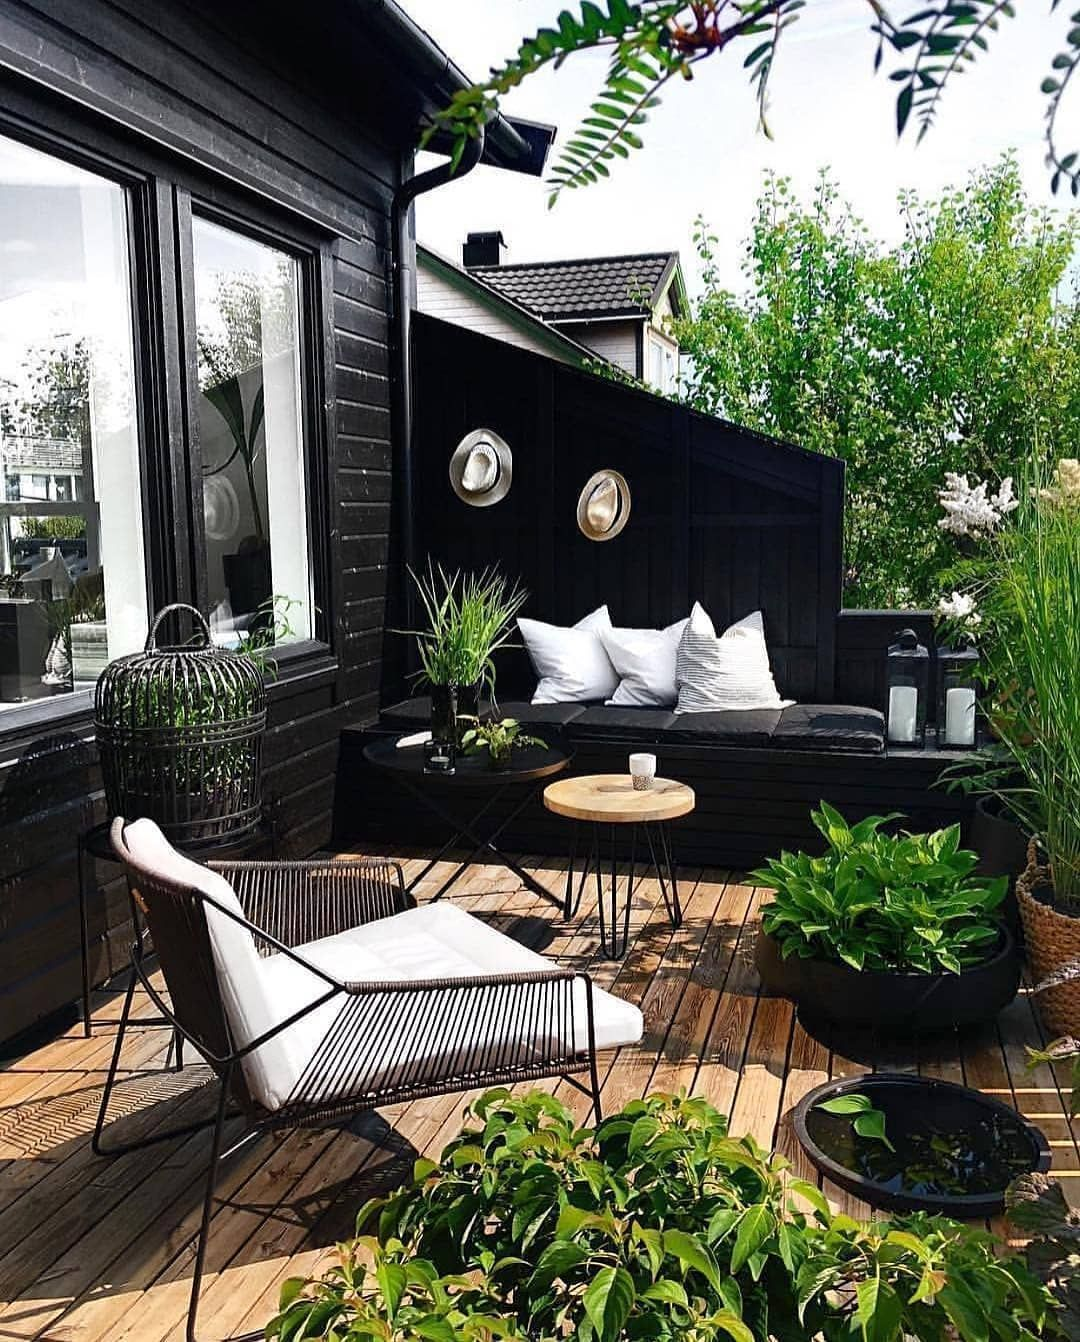 I Ve Always Liked Black In Nature I Feel Like There Is A Something So Sleek When You Combine Black Wood And Greenery Summer Living Home Outdoor Rooms